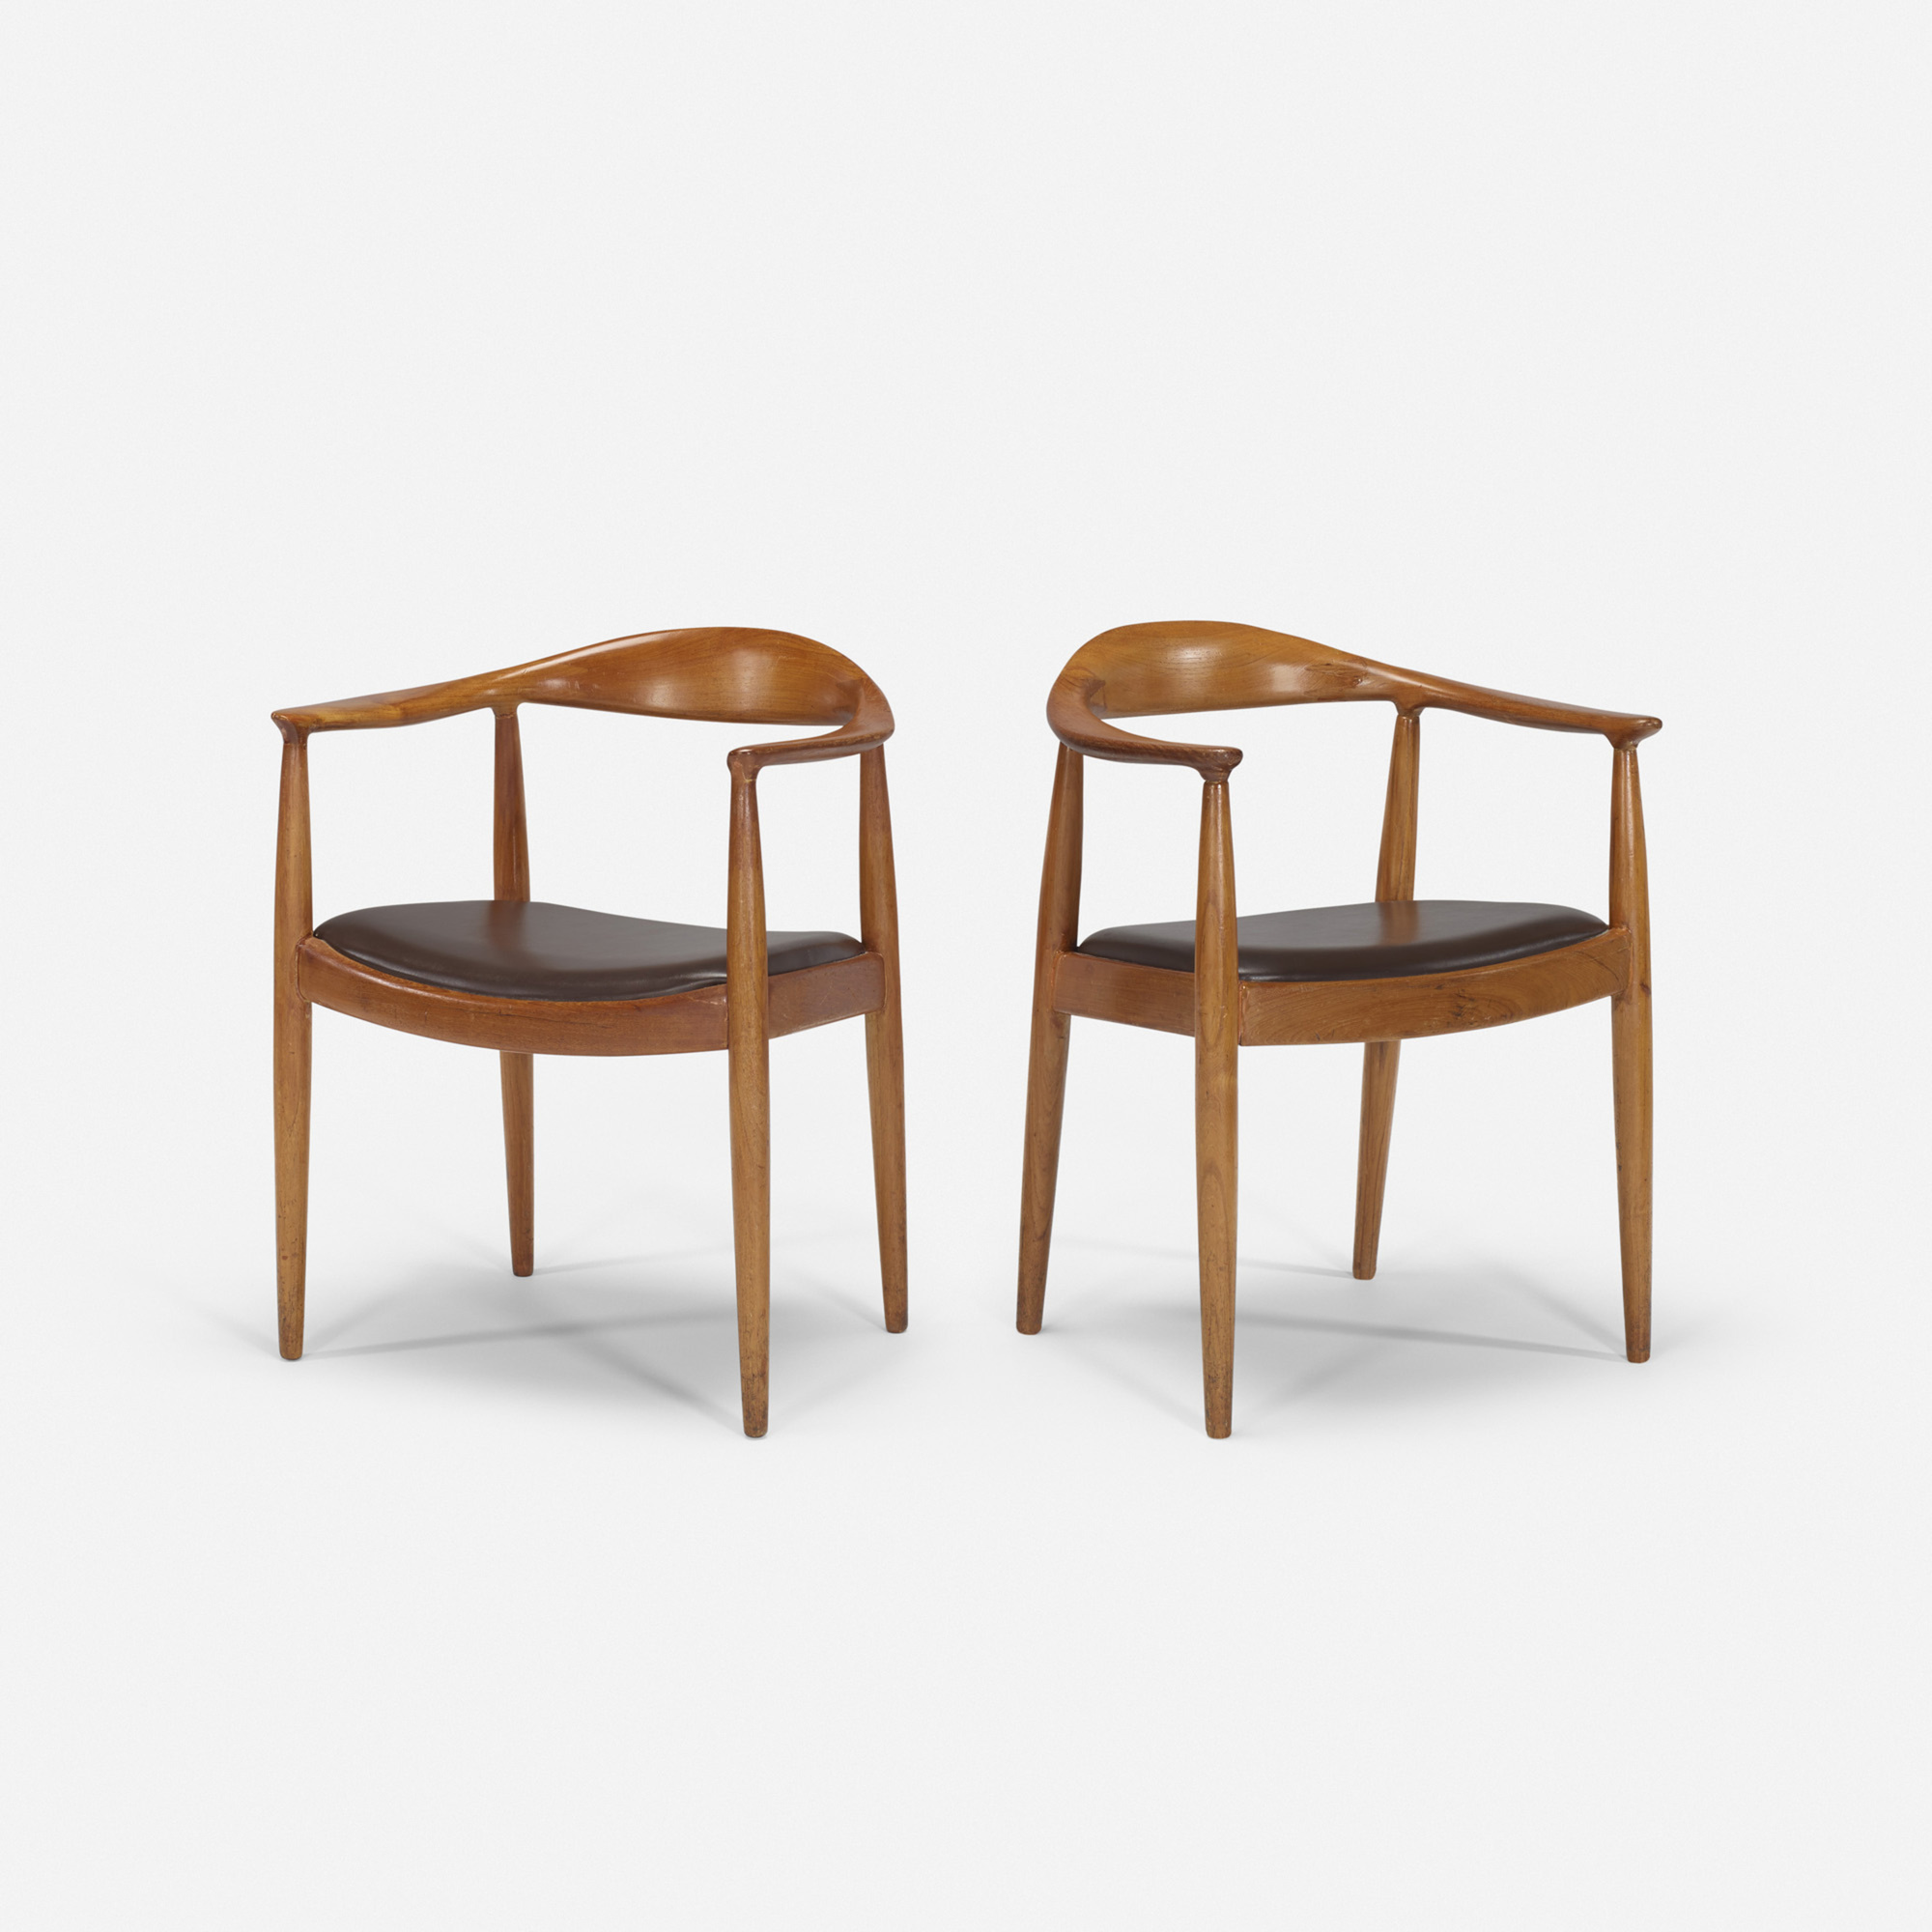 404: After Hans J. Wegner / The Chairs from the mezzanine of the Grill Room, pair (1 of 1)